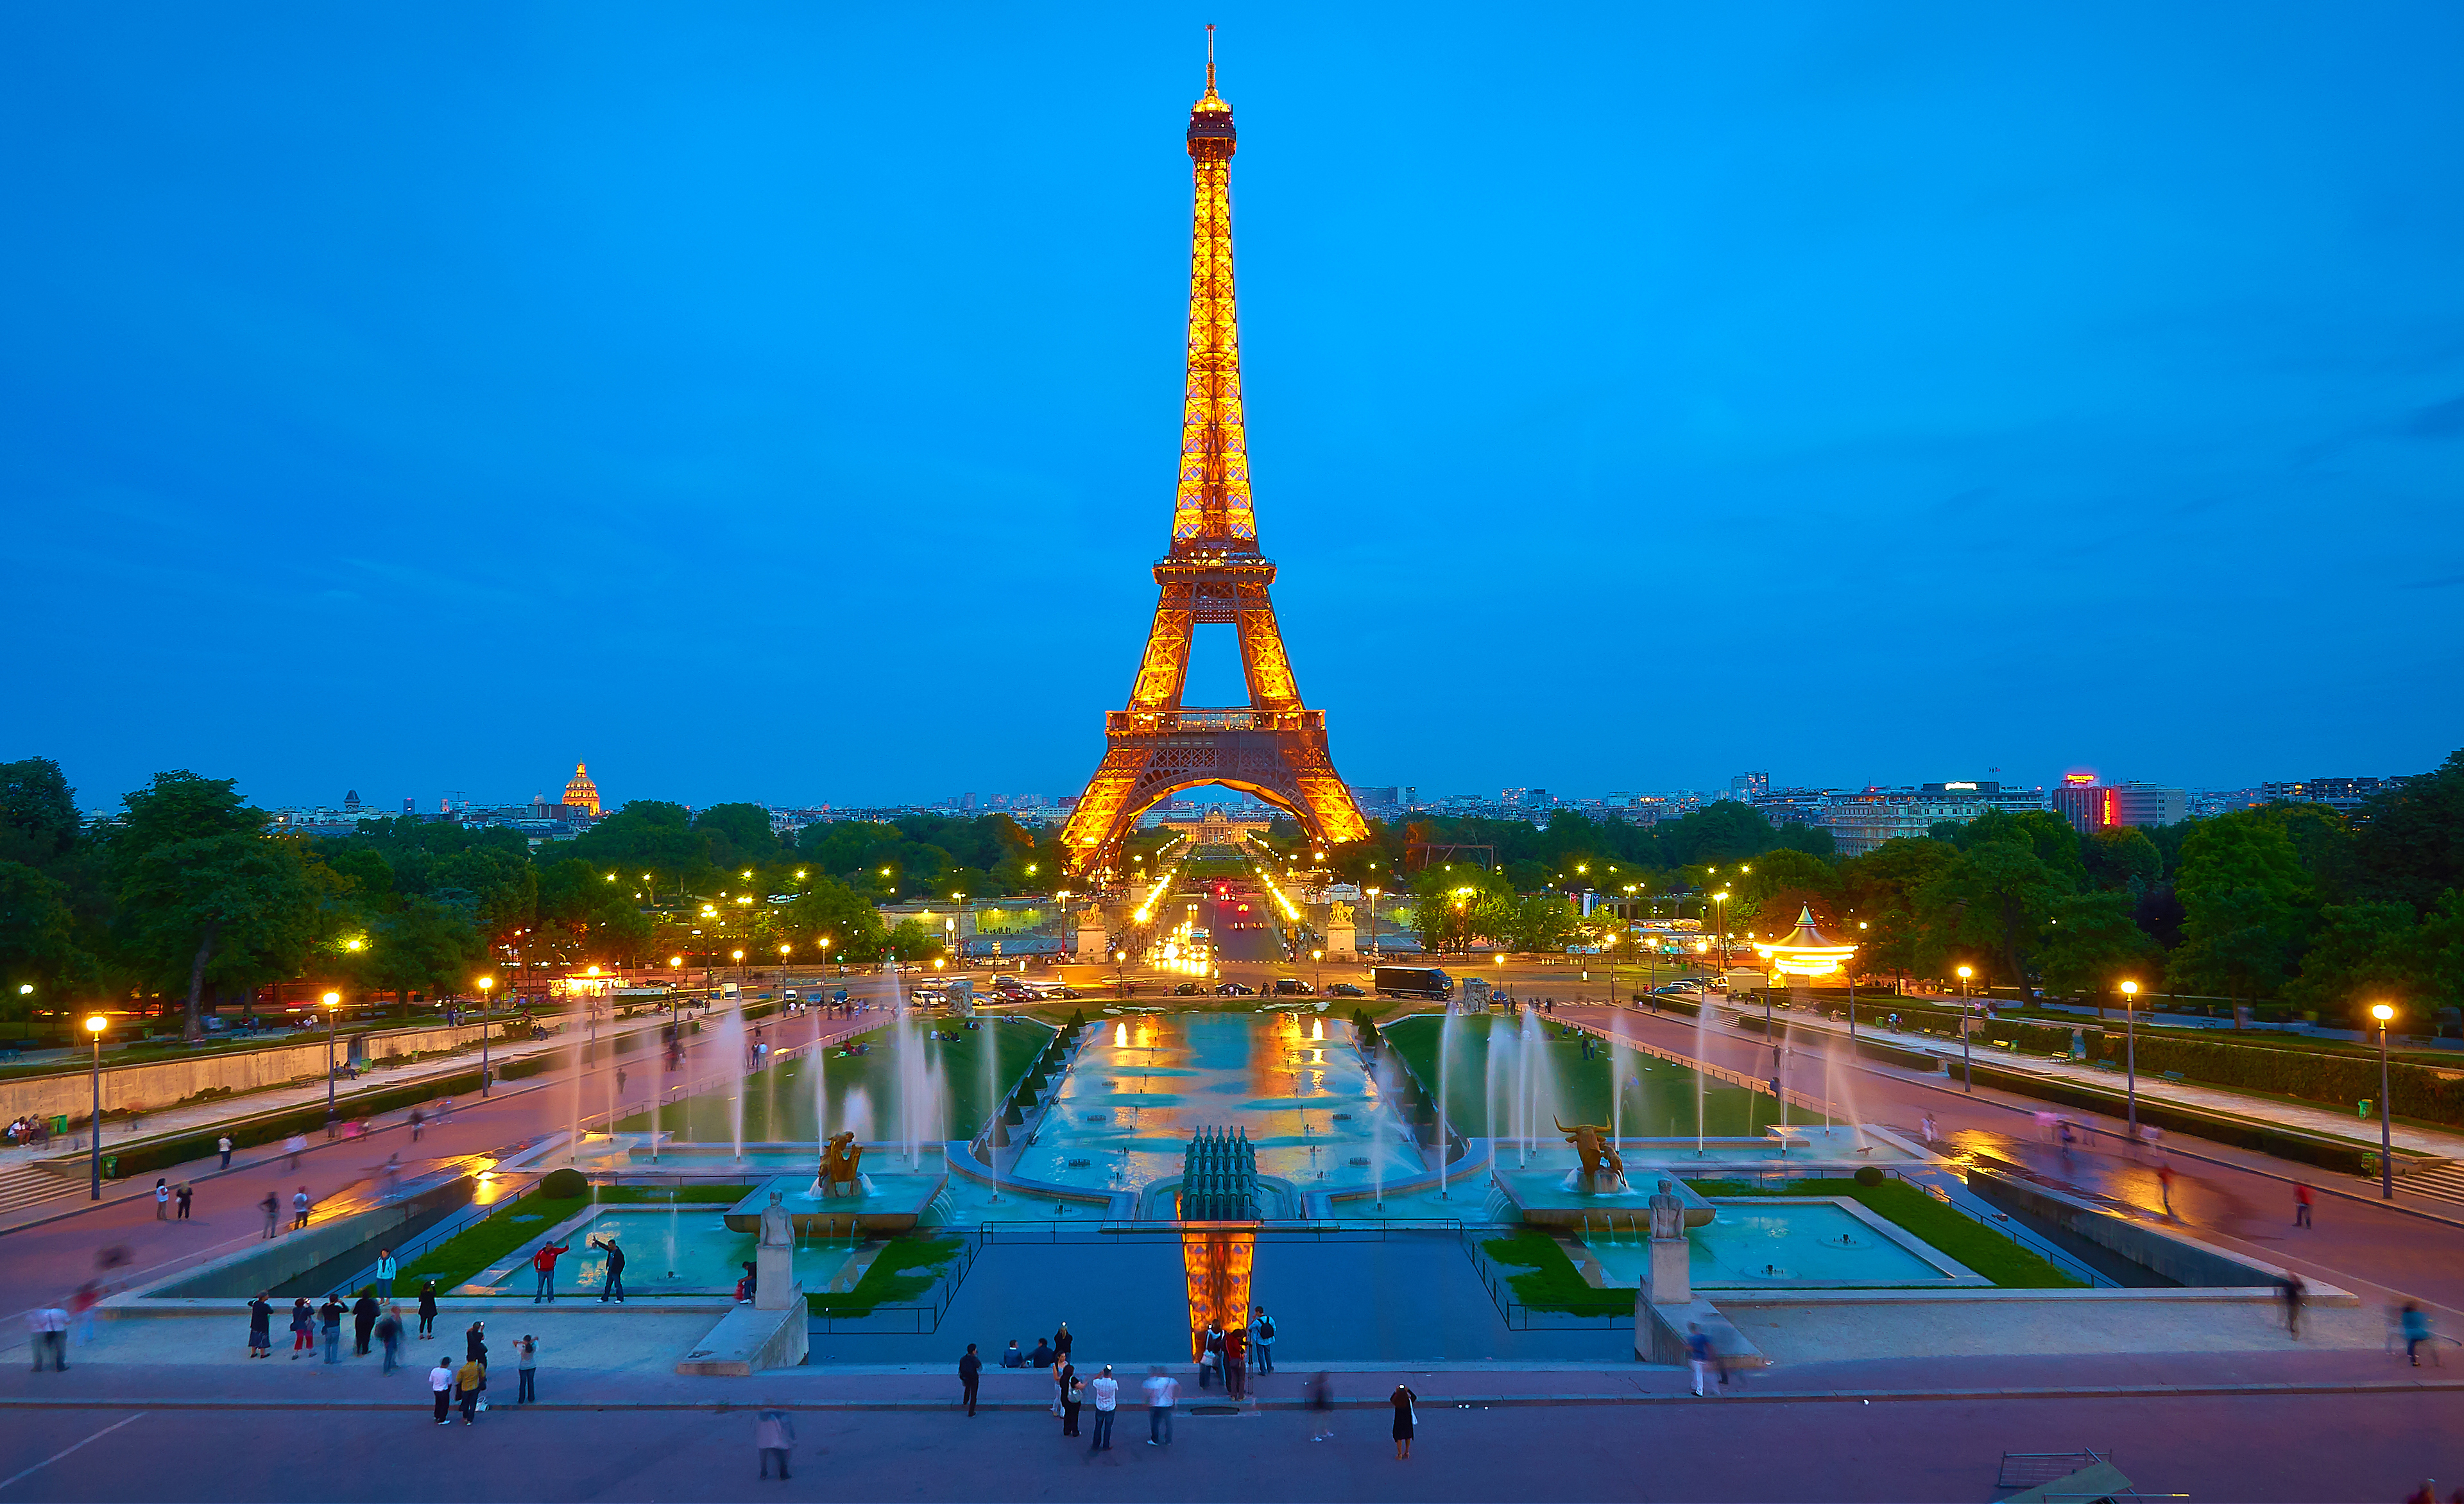 trocadero paris at night images. Black Bedroom Furniture Sets. Home Design Ideas